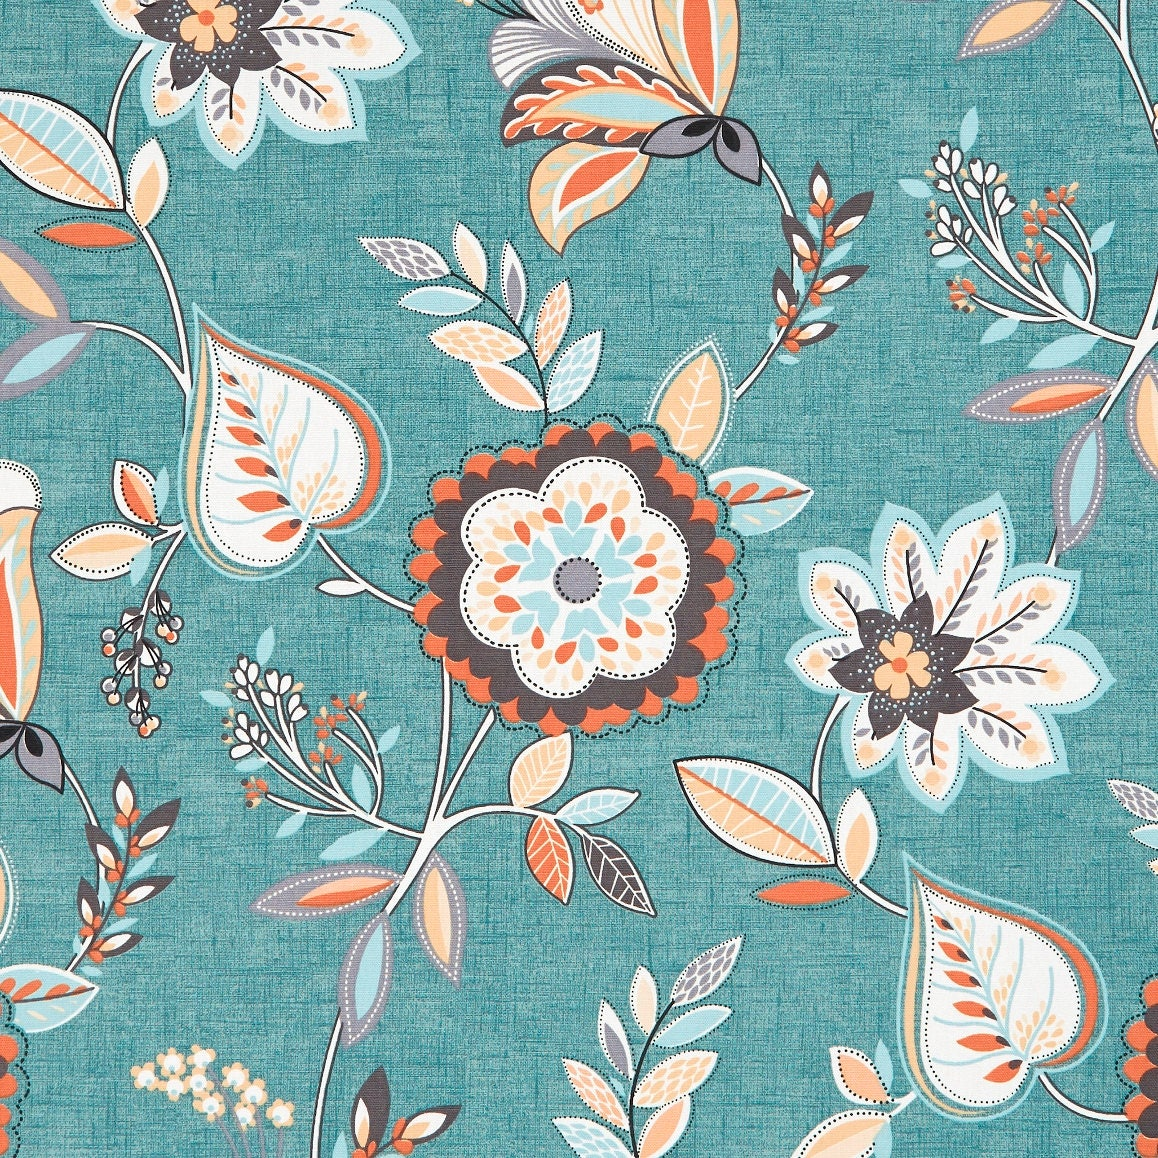 teal orange floral upholstery fabric light blue floral etsy. Black Bedroom Furniture Sets. Home Design Ideas